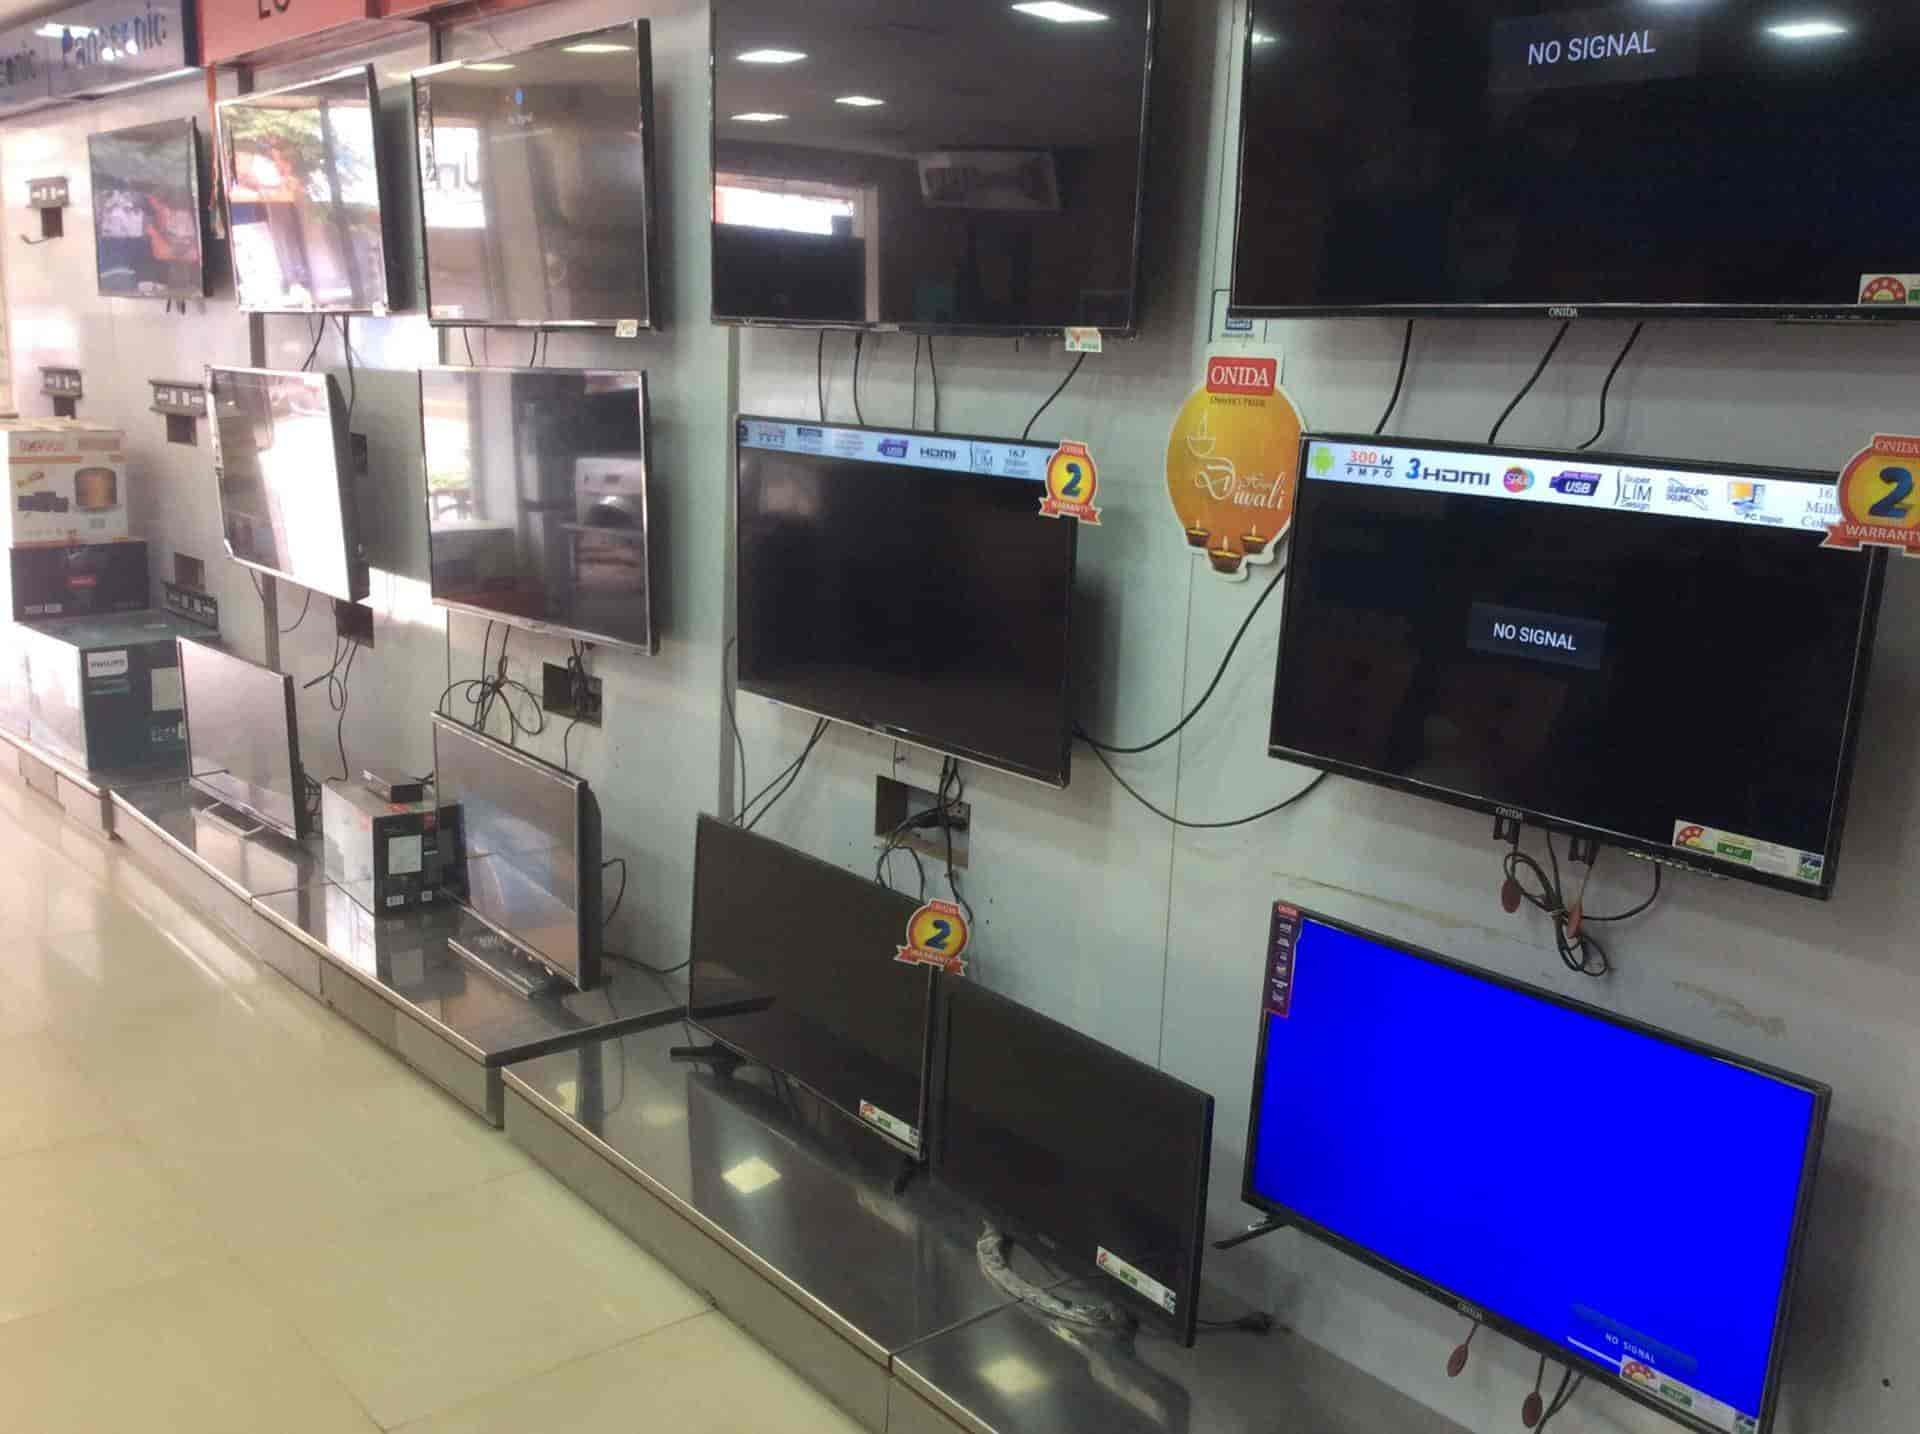 Kens Electronics And Home Appliances Photos, Yelahanka New Town